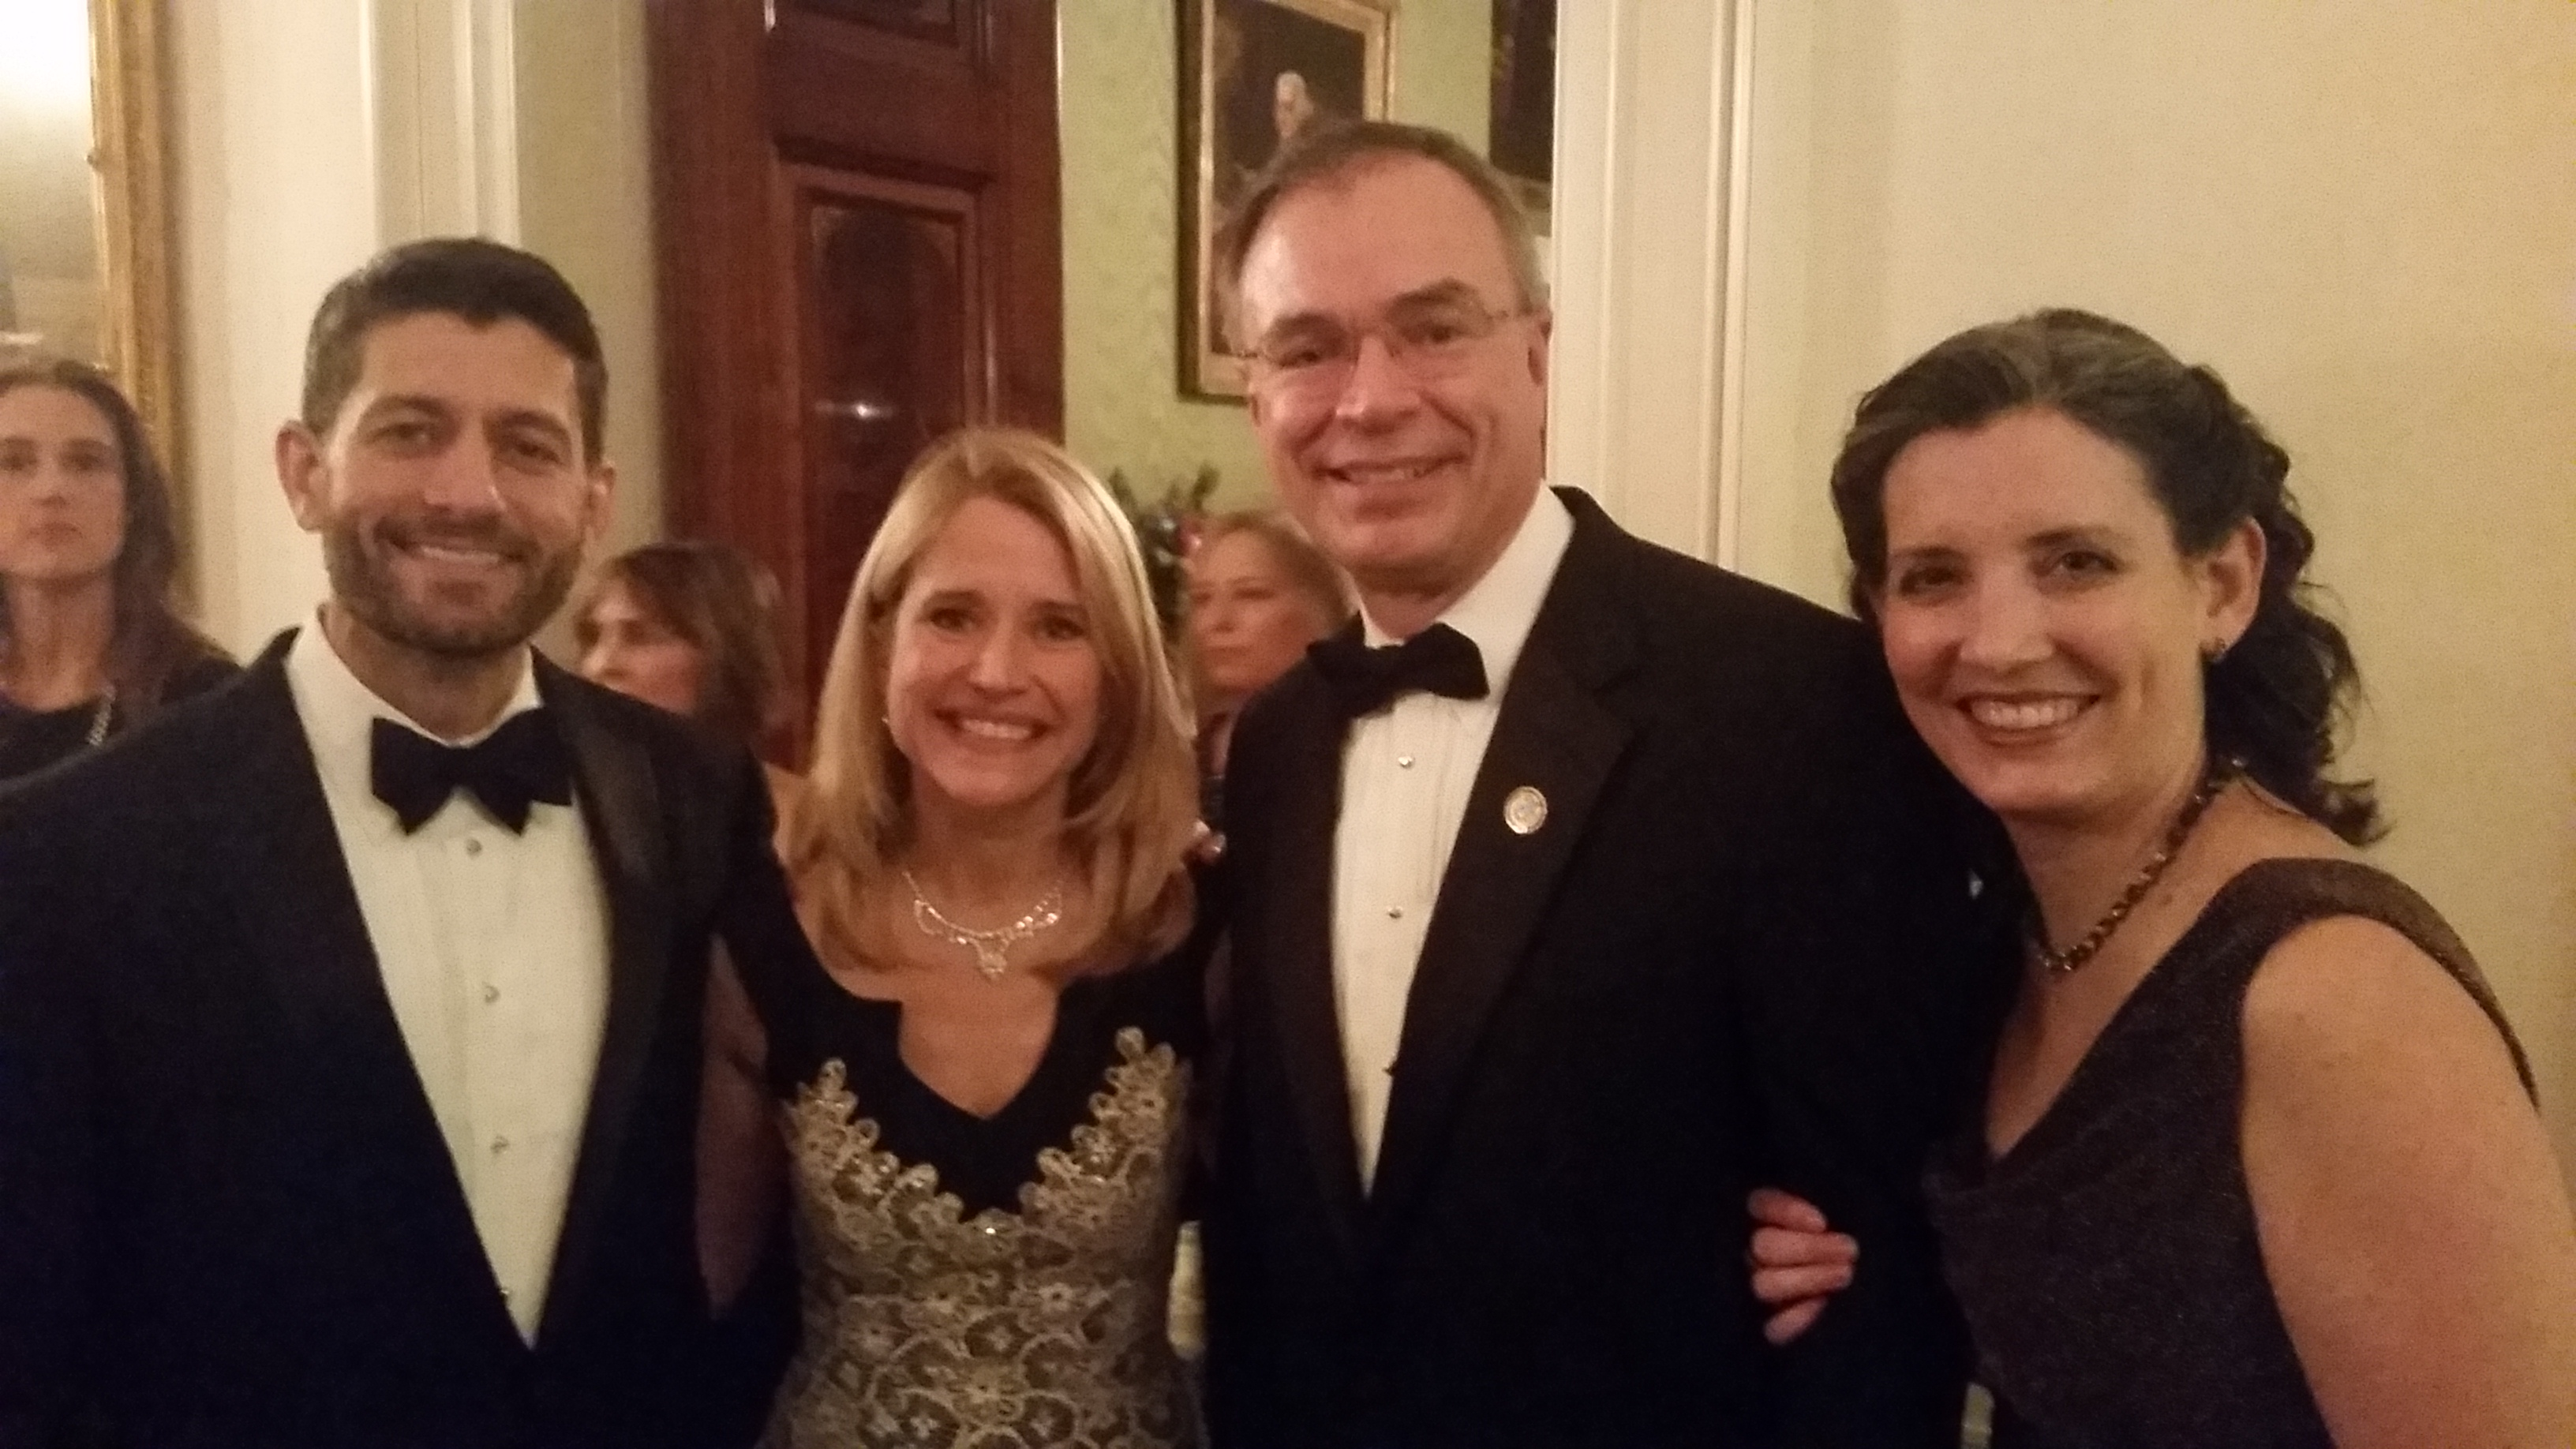 With Paul & Jenna Ryan in the WH2015